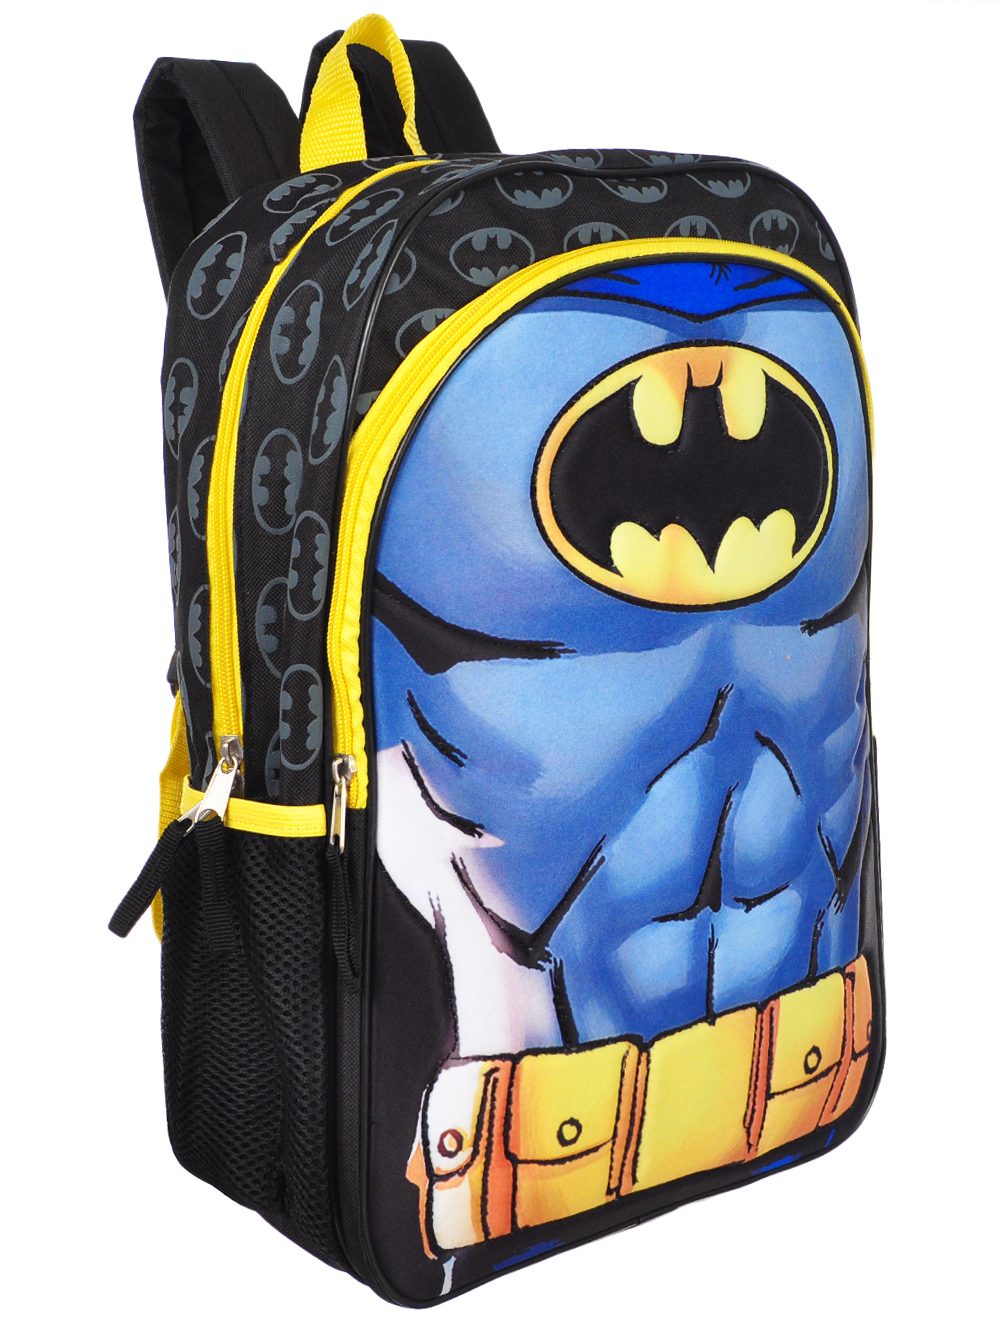 7dedcc41ab95 Batman Backpack